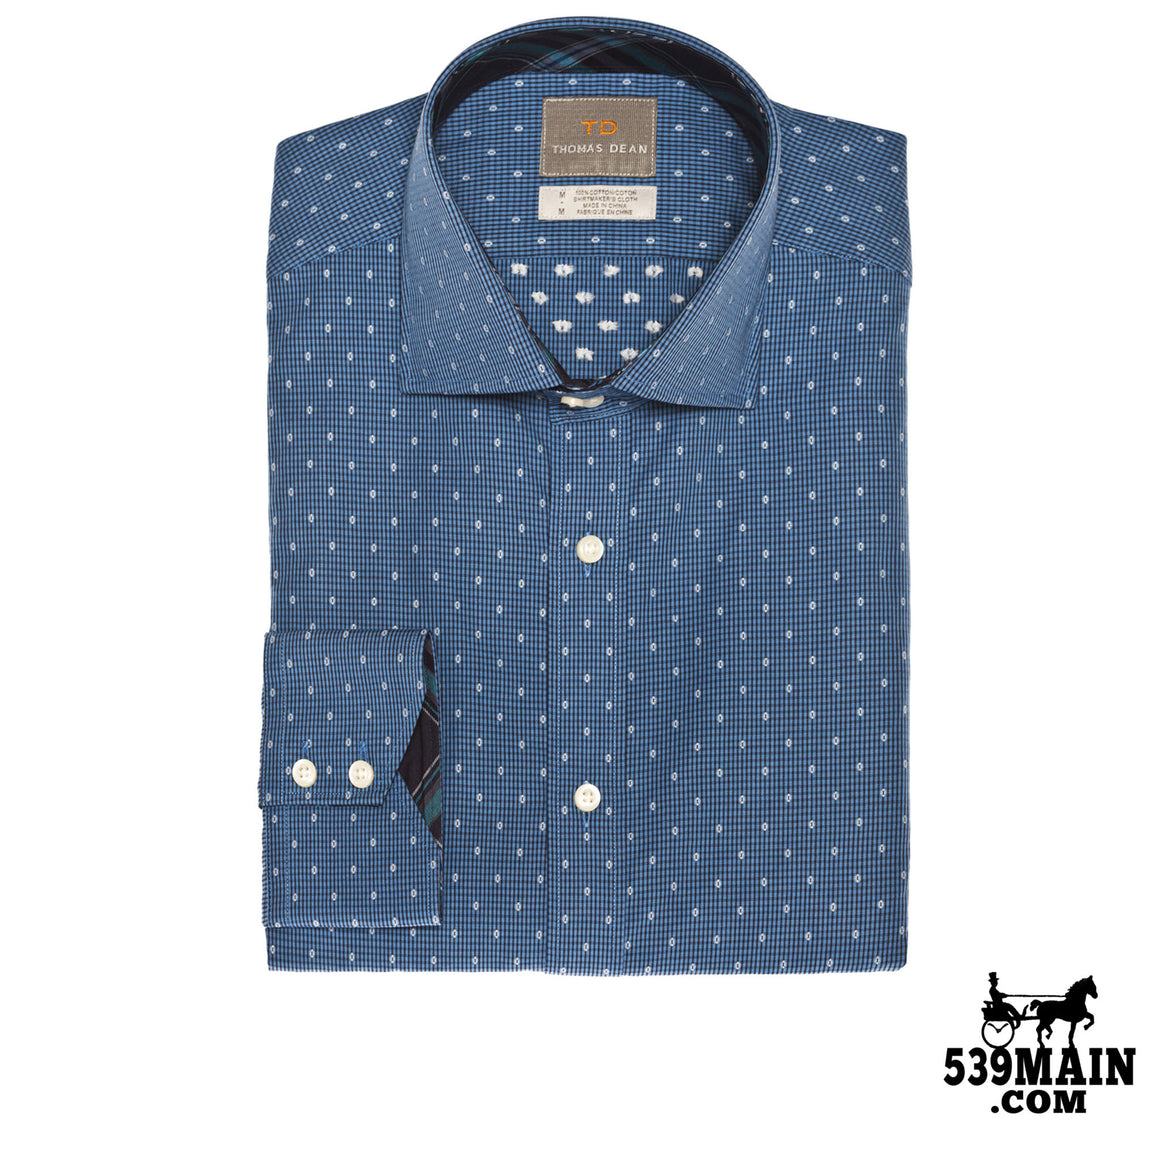 THOMAS DEAN™ - BLUE CHECK WITH FIL COUPE - BUTTON DOWN SPORT SHIRT - T3A15-228 - 539MAIN - 1